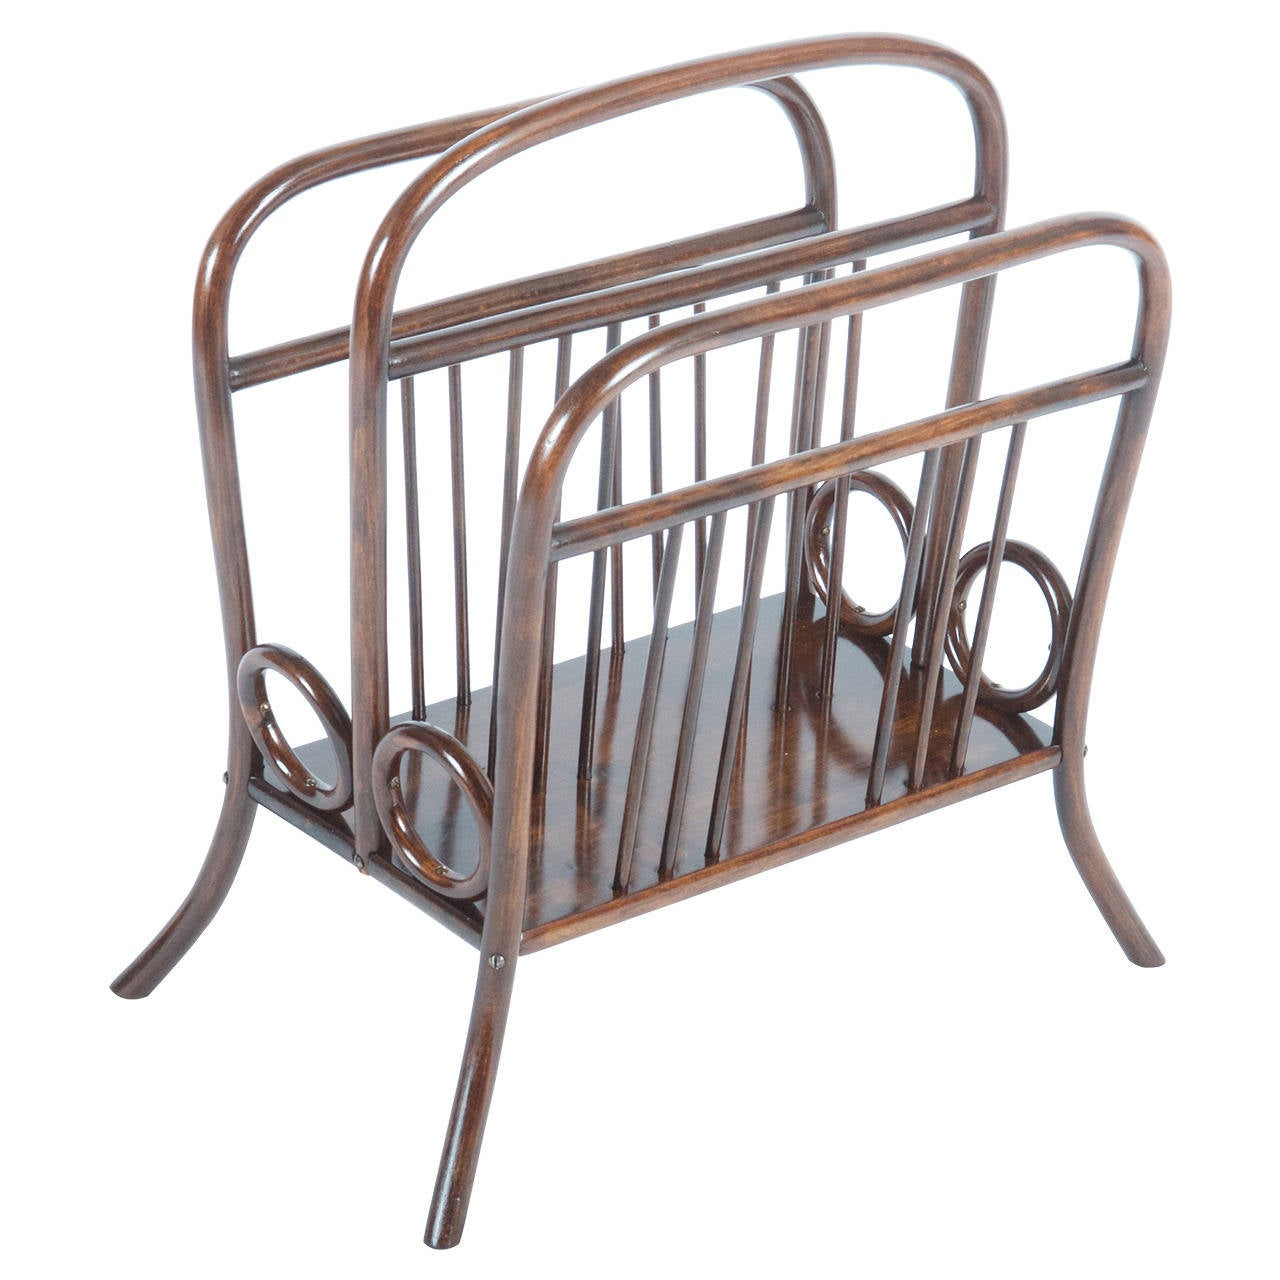 newspaper rack 1. Thonet Bentwood Music Or Newspaper Rack, Catalogue Number 33 For Sale Rack 1 K